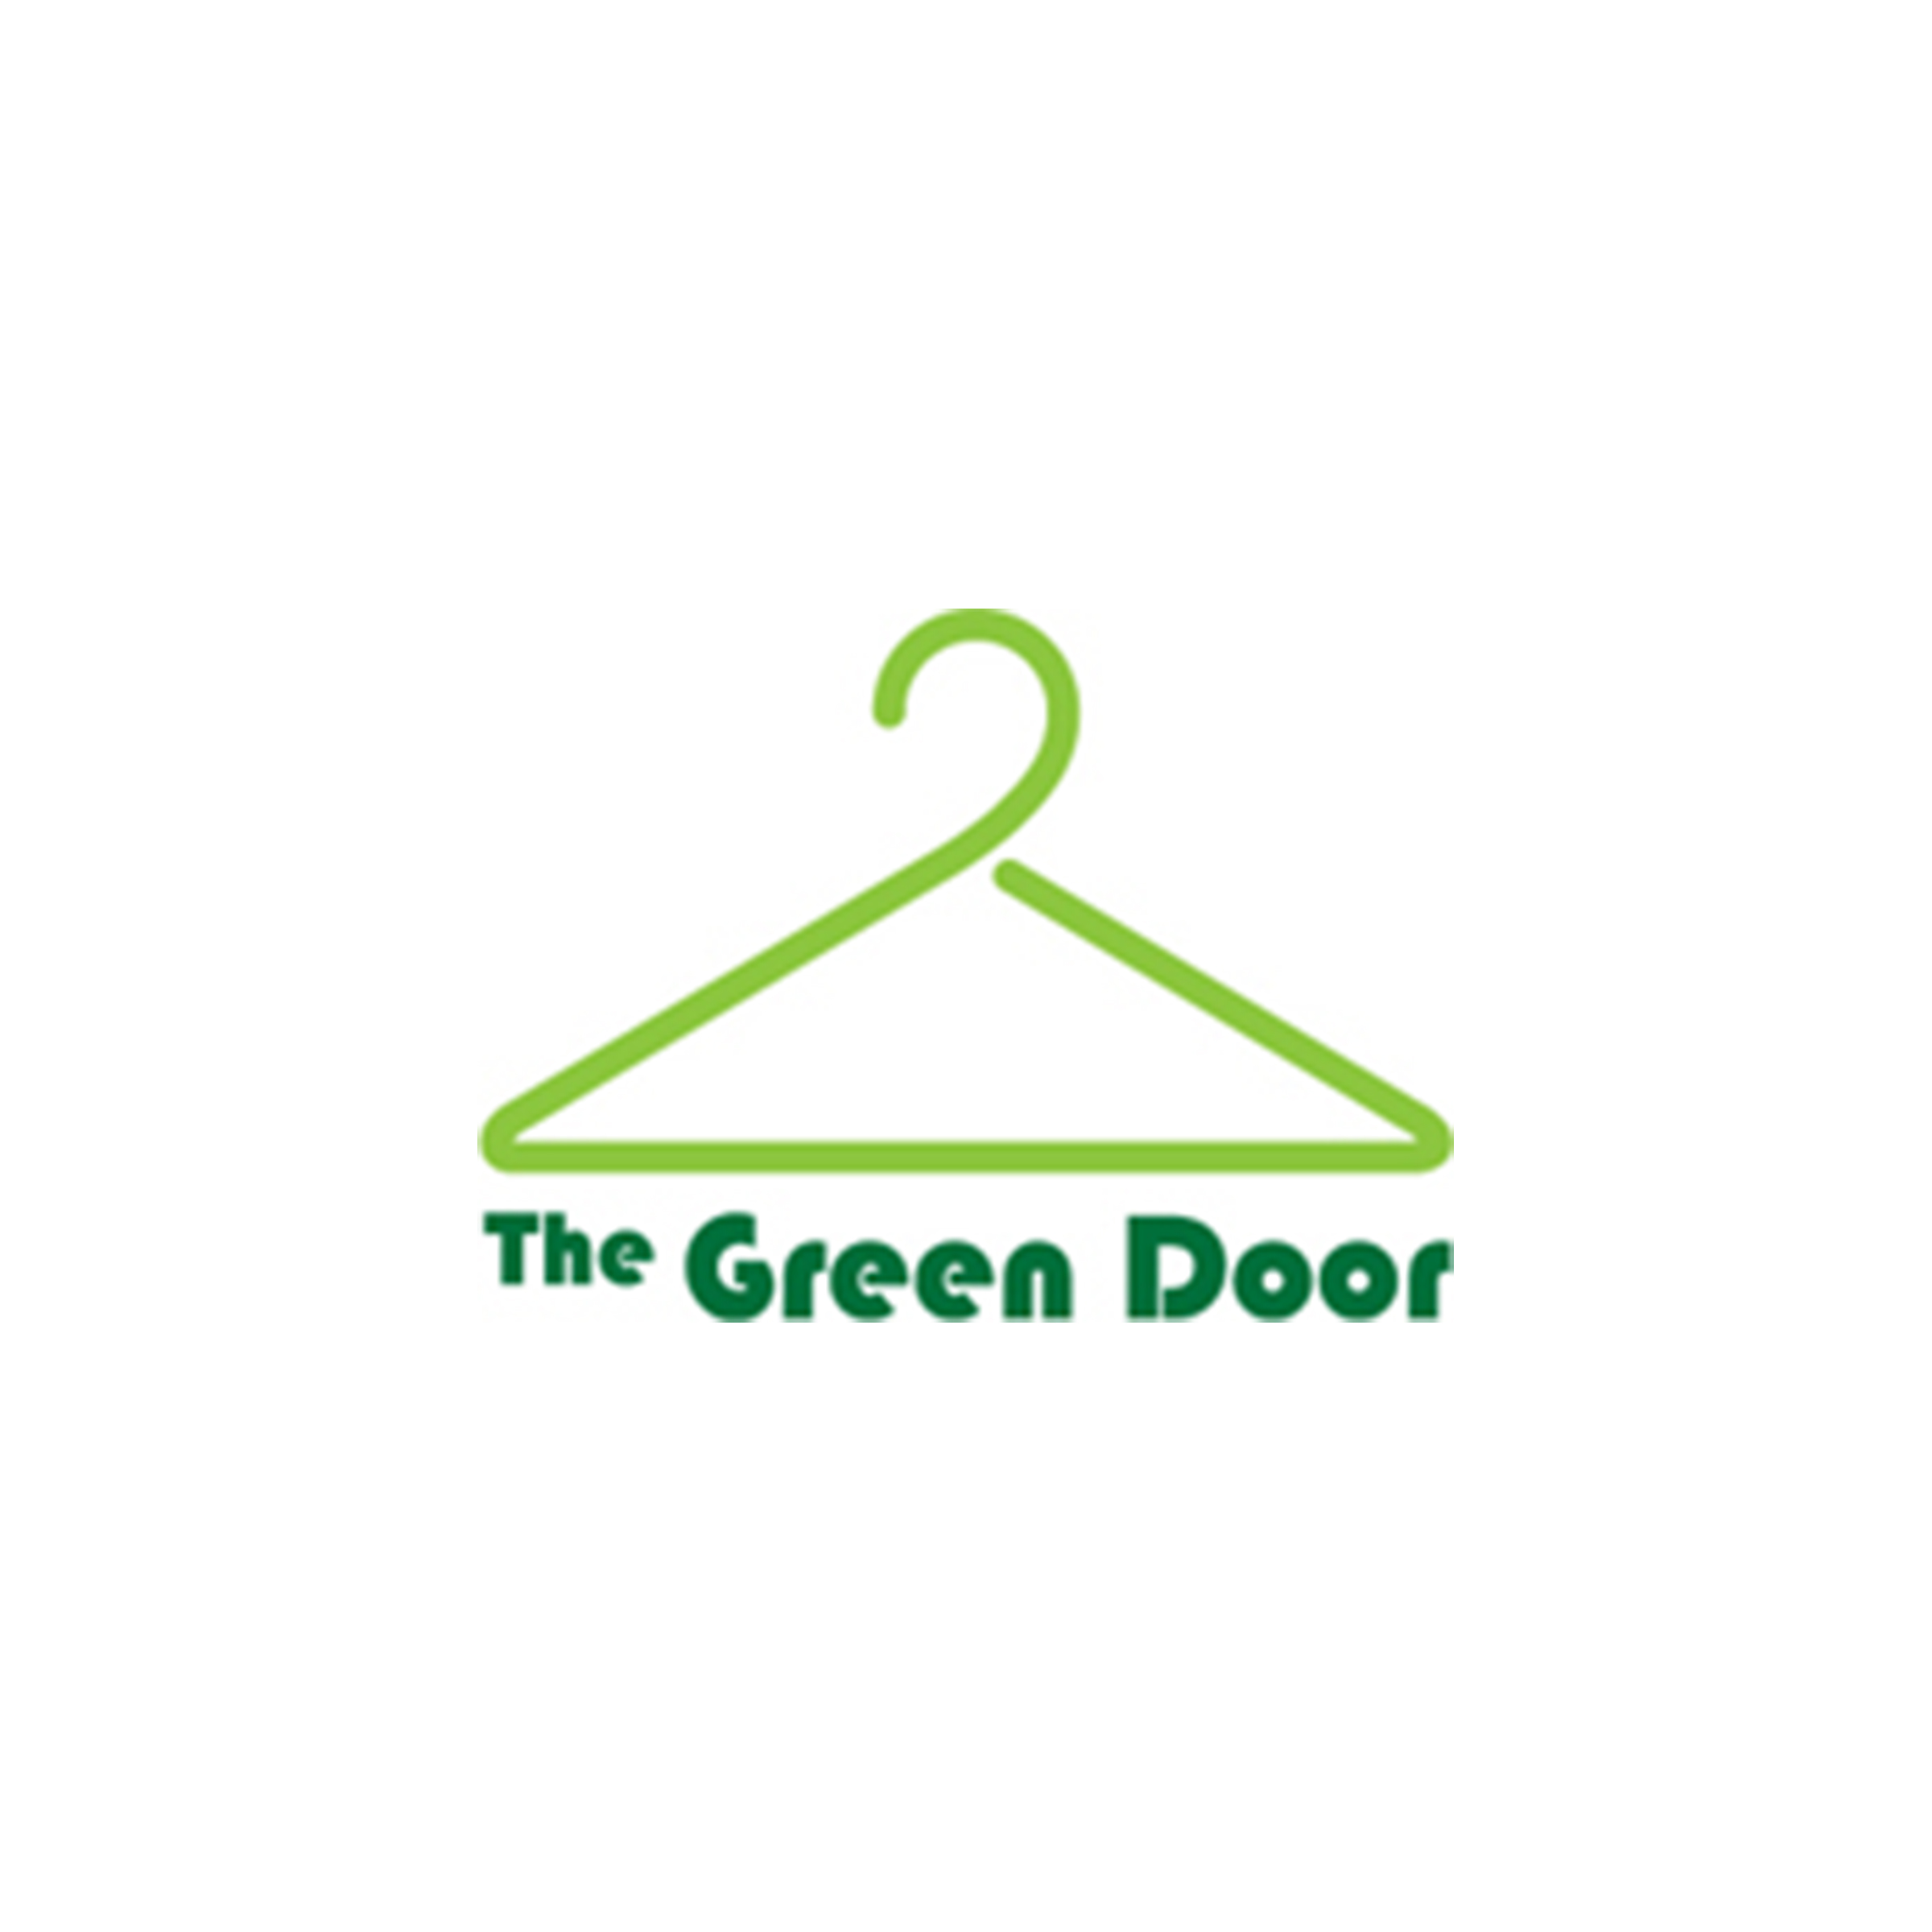 T H E G R E E N D O O R  The Green Door is a vibrant boutique shop in downtown Kitchener that sells gently used clothing with care and enthusiasm. At this warm and attractive shop, you can find items that include women's, men's, and children's clothing, plus accessories, shoes, and more. The Green Door project works towards re-enlivening clothes and engaging people in the concept.